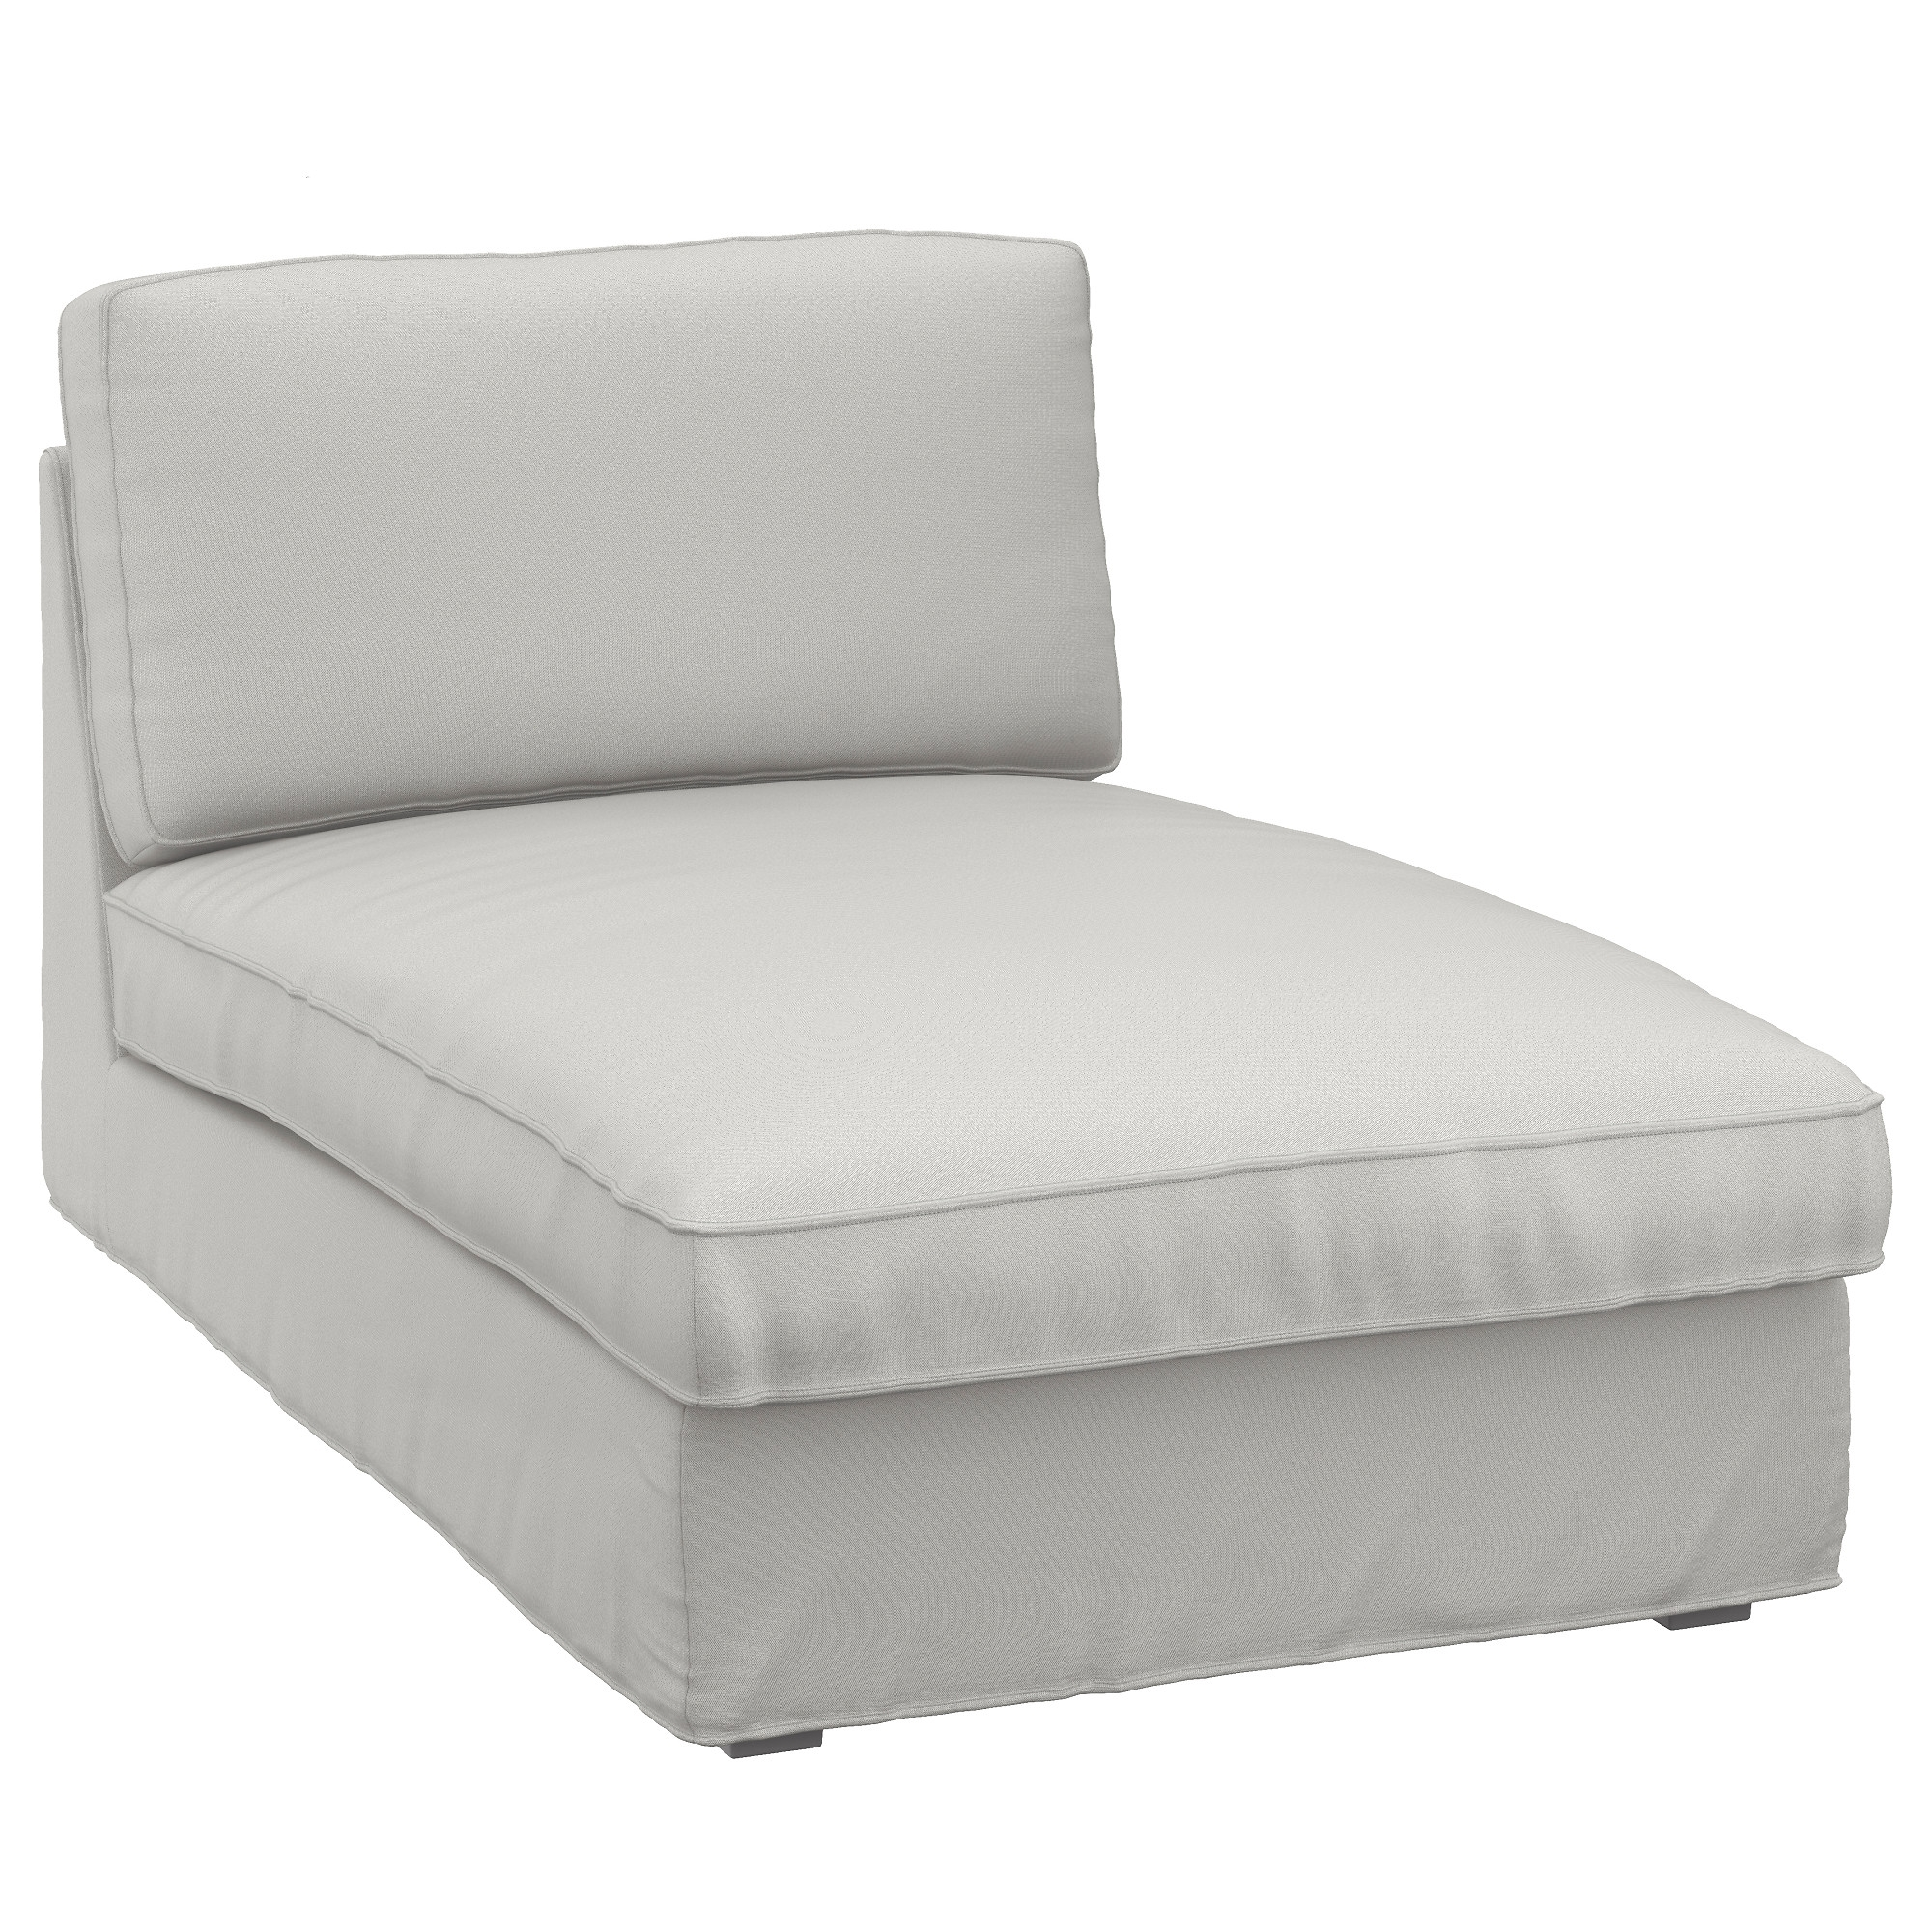 Famous Chaise Lounges (View 3 of 15)